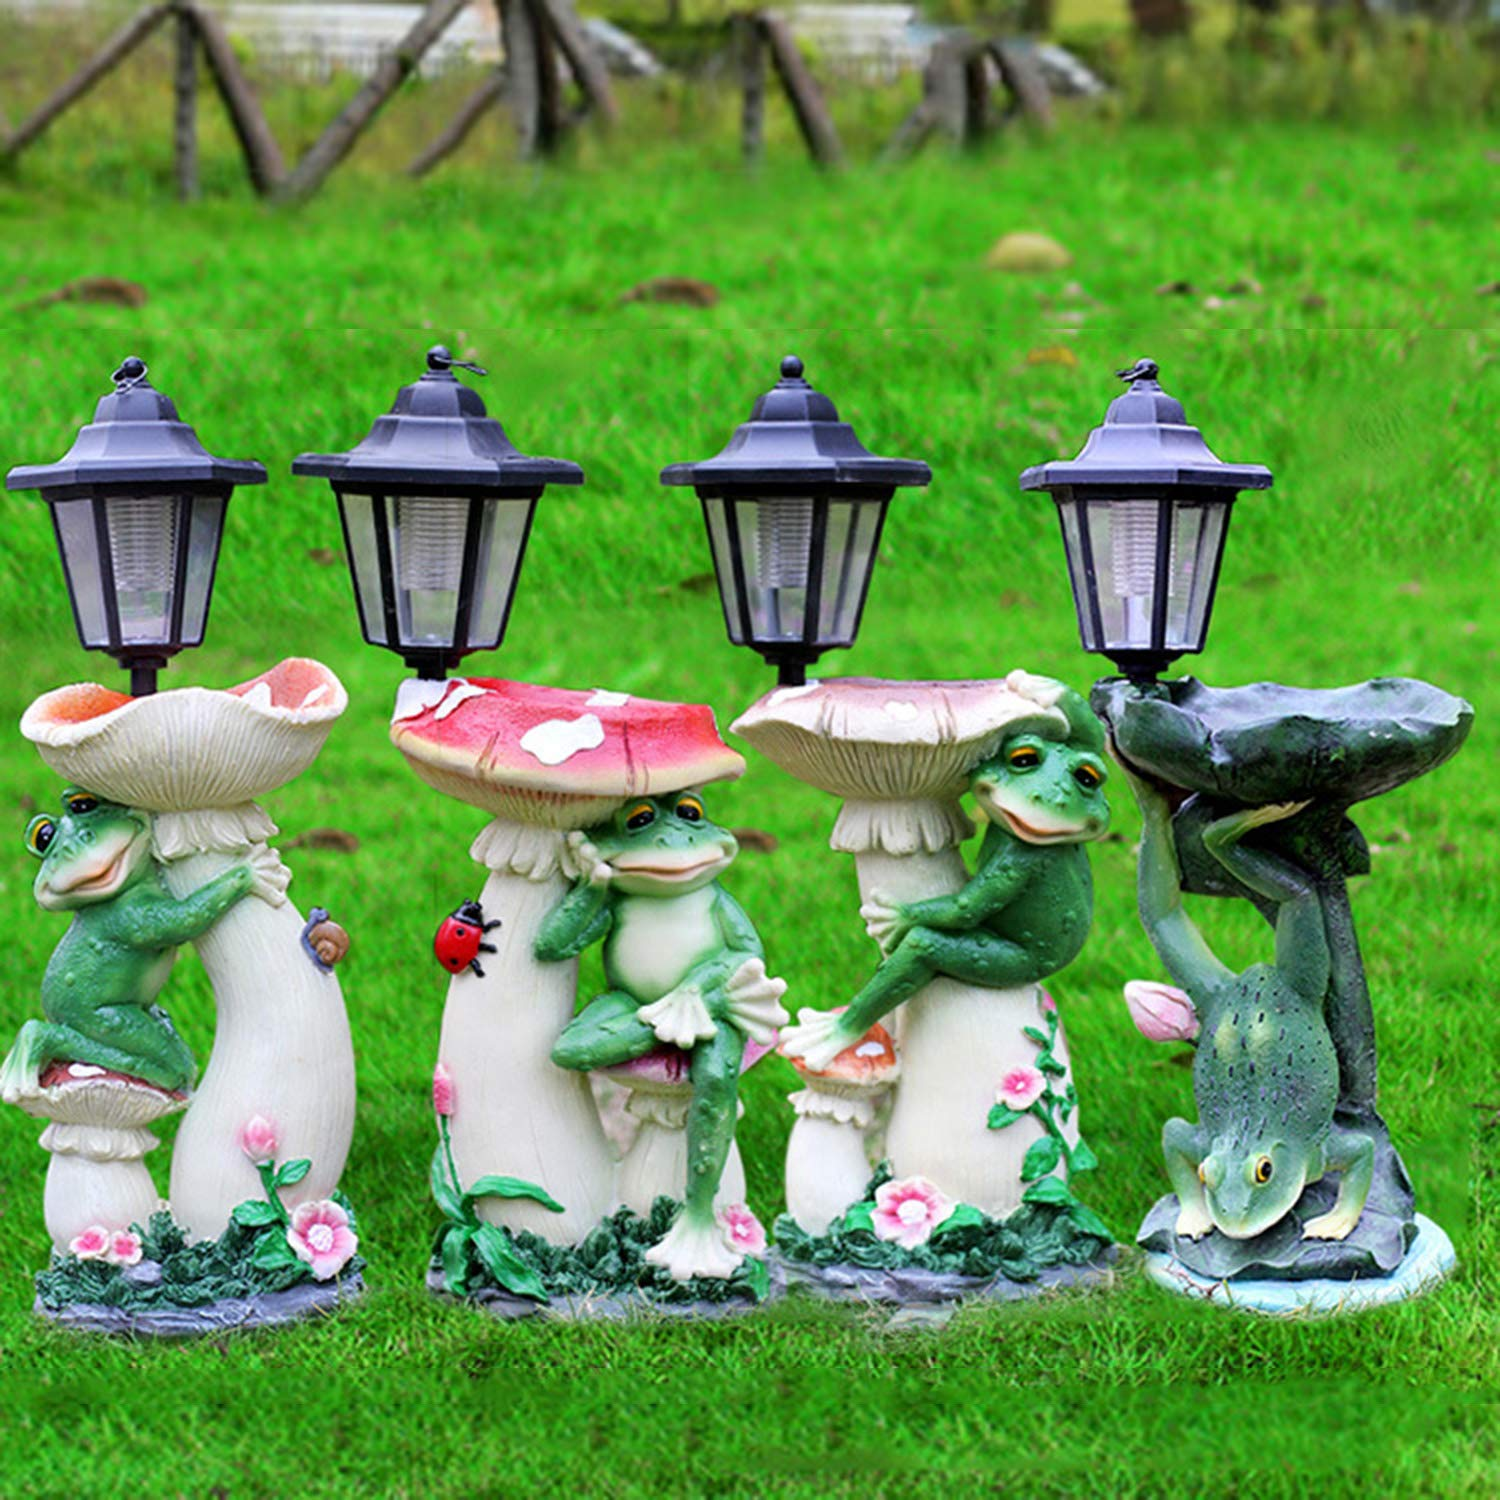 LOVEPET Outdoor Frog Mushroom Solar Light Simulation Decoration Garden Frog Mushroom Bird Feeder Garden Villary Landscape Decorations 19X17X46cm